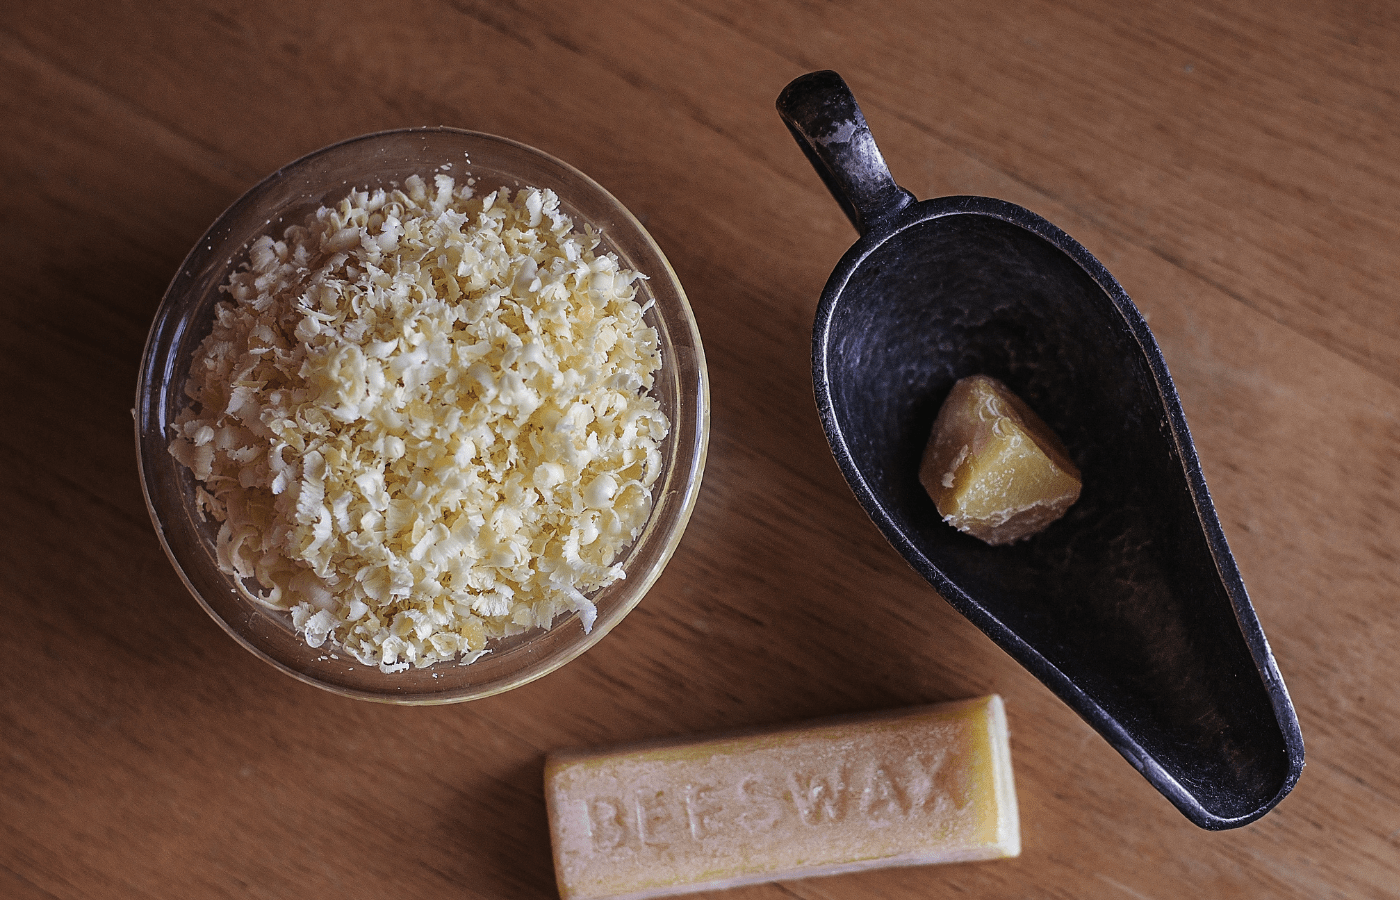 How to Filter Beeswax for Candlemaking